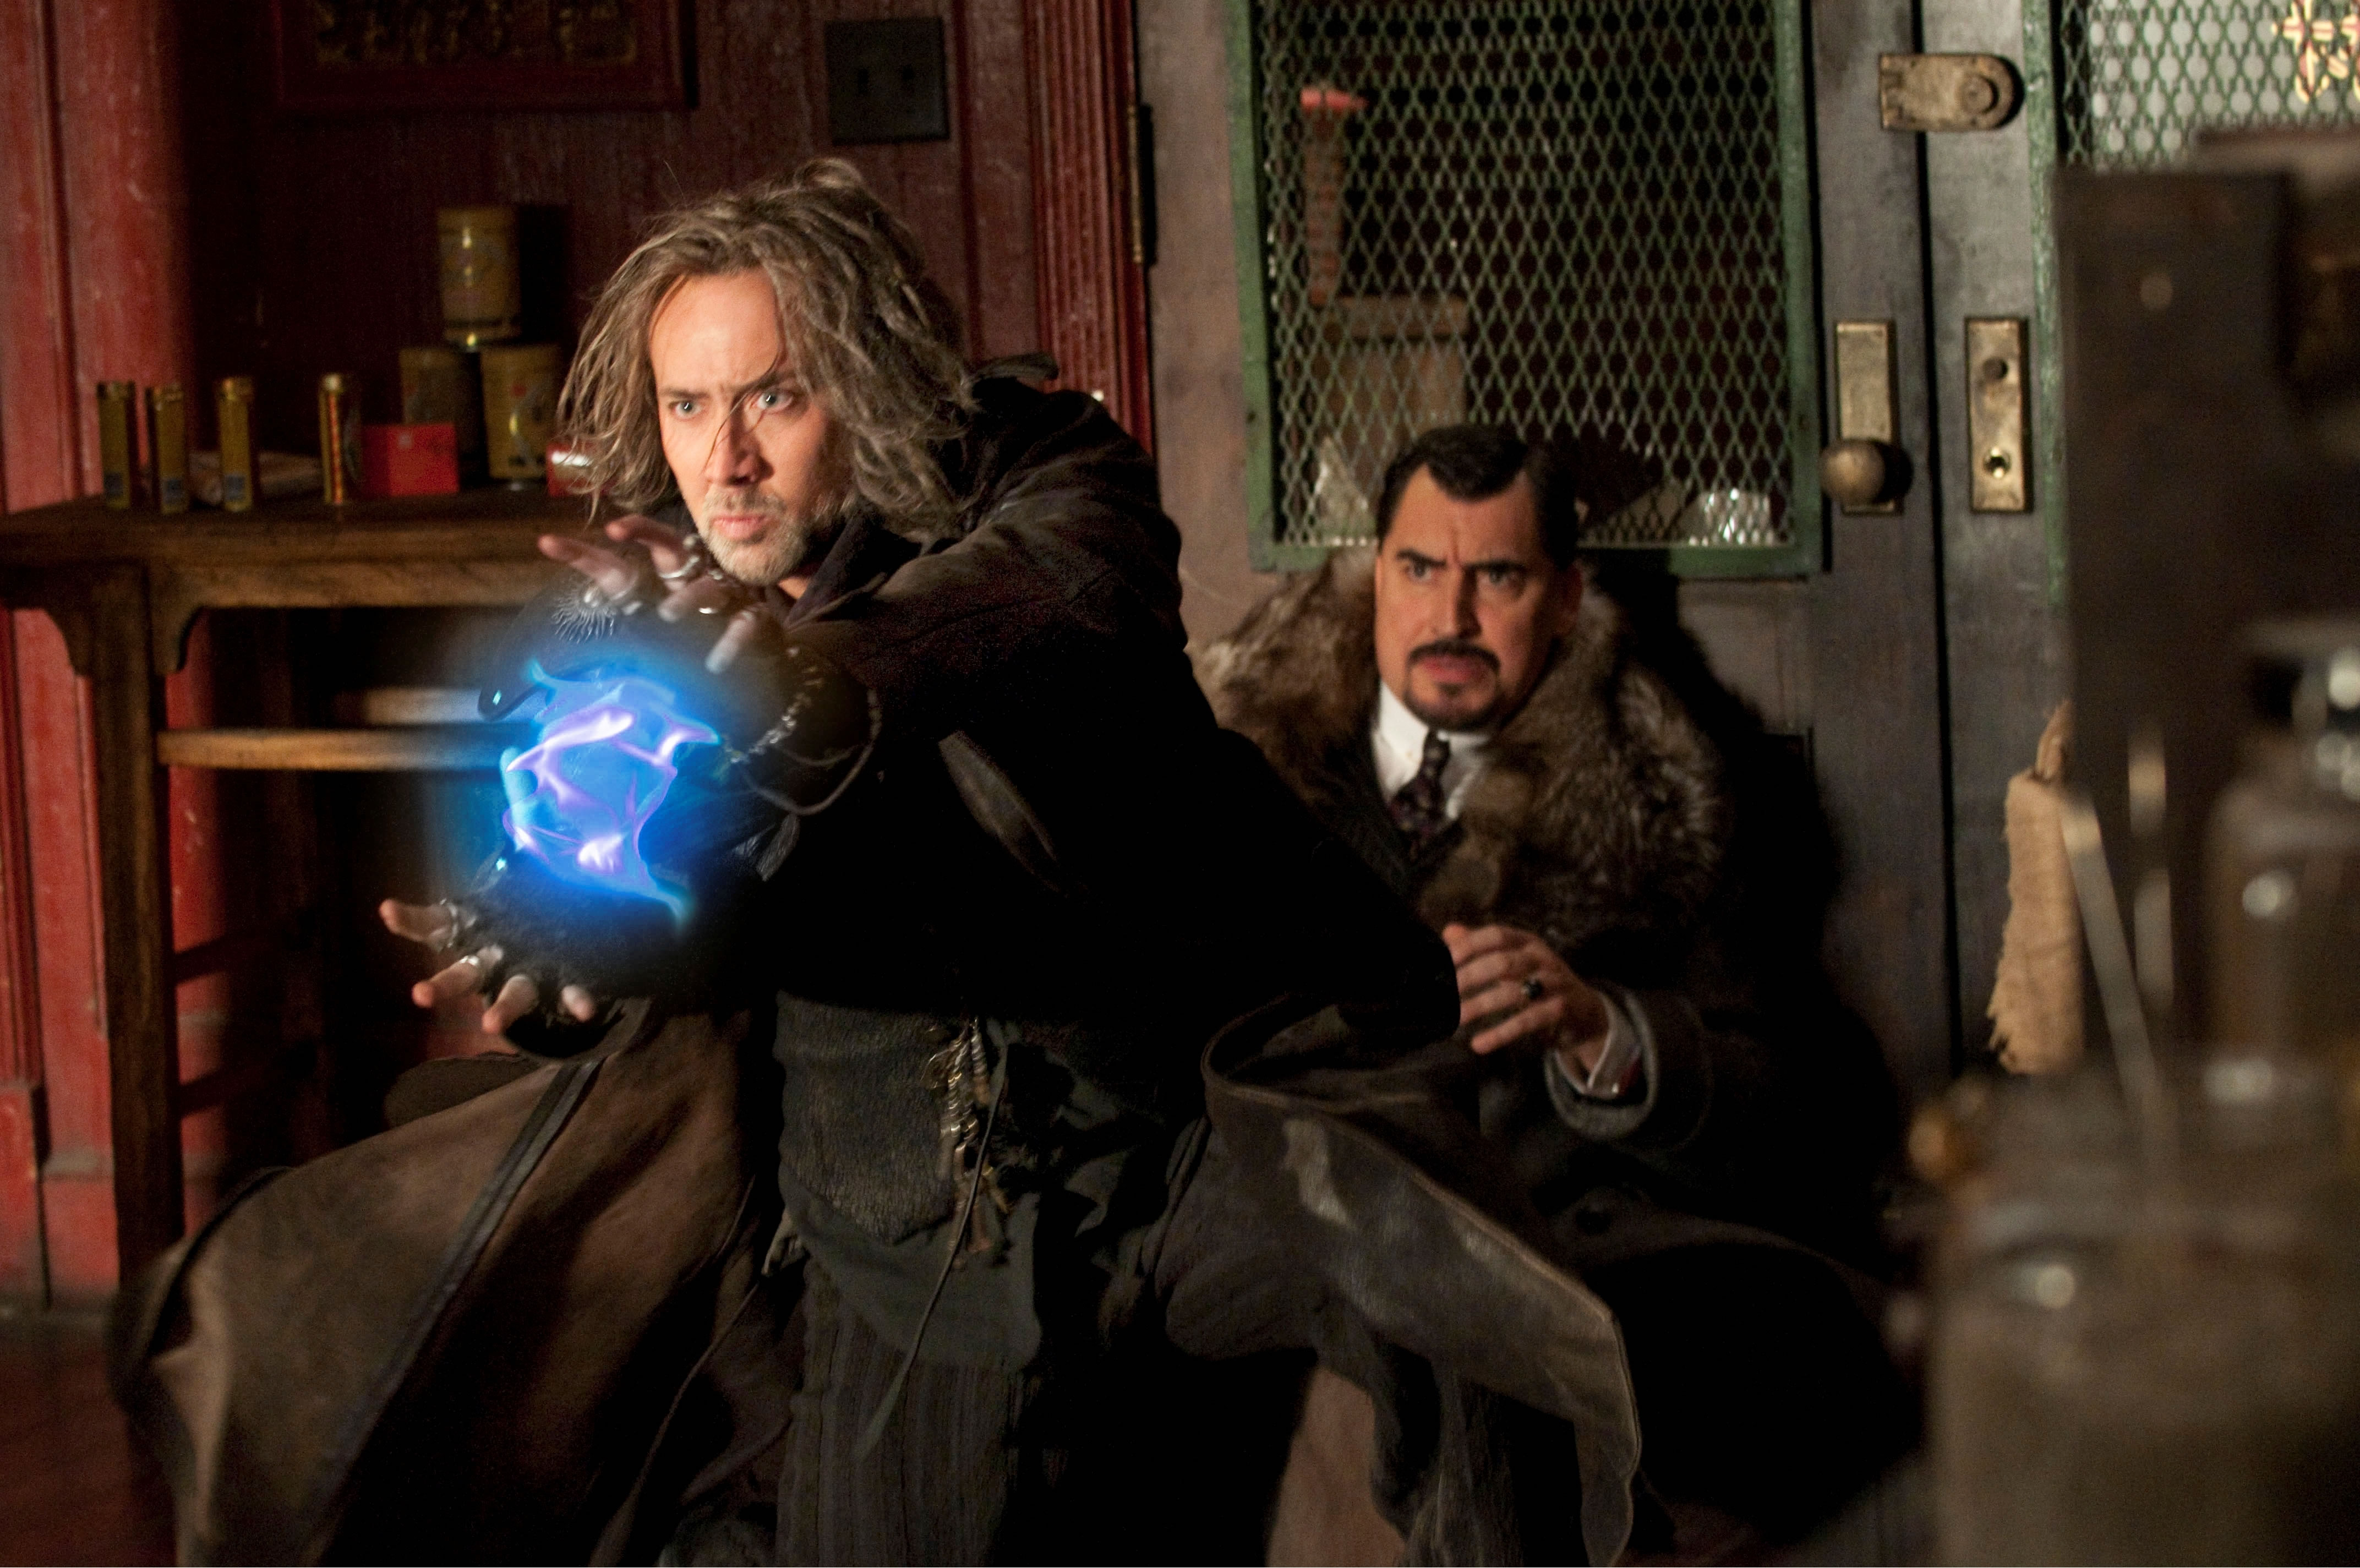 nicolas-cage-and-alfred-molina-in-the-sorcerers-apprentice_jpg1